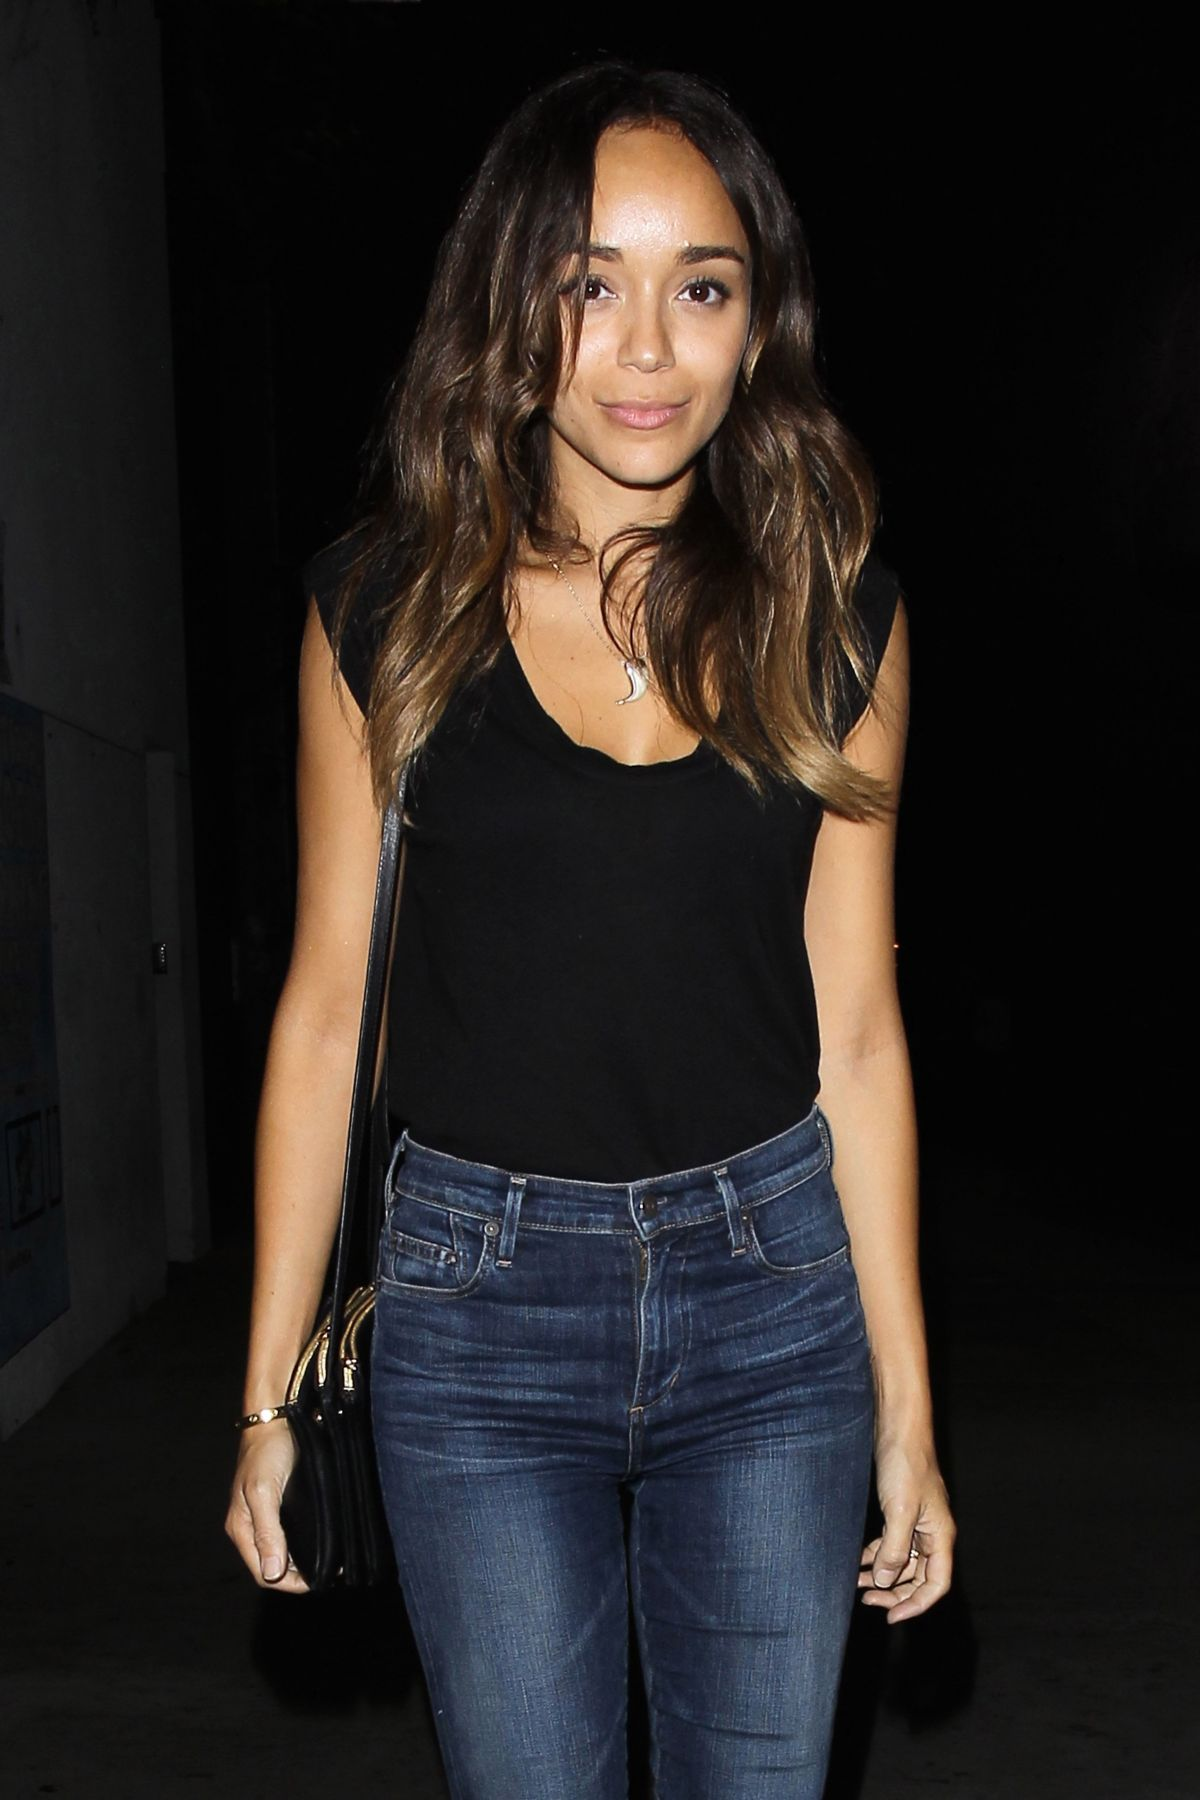 Ashley madekwe night out in hollywood 07 23 2015 hawtcelebs for Jardin madison menu